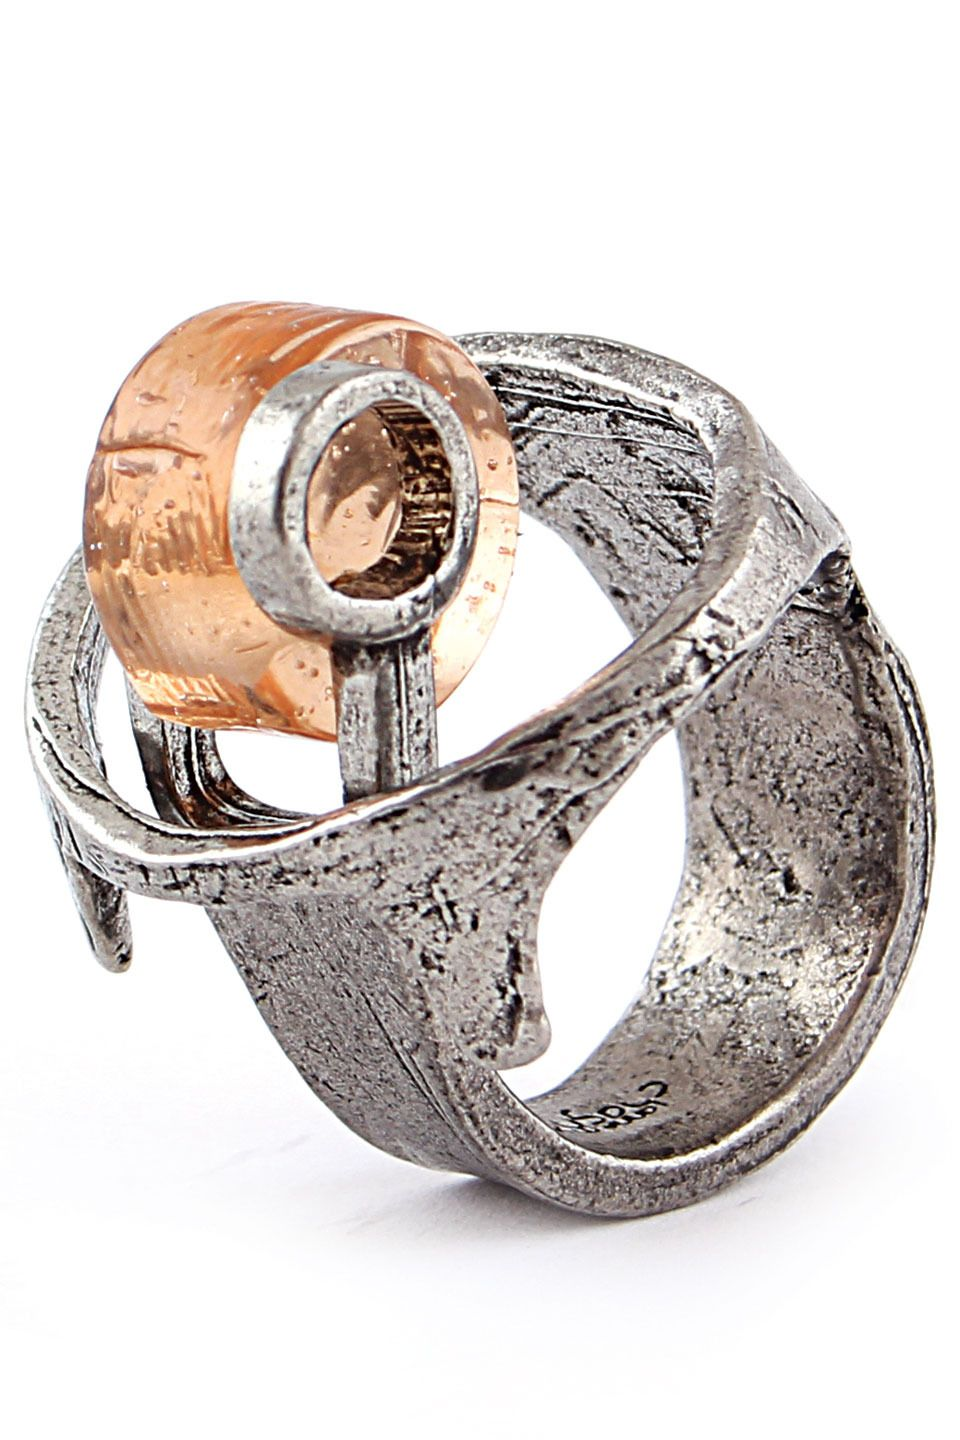 rings jewelry collections accessories pewter page chanour